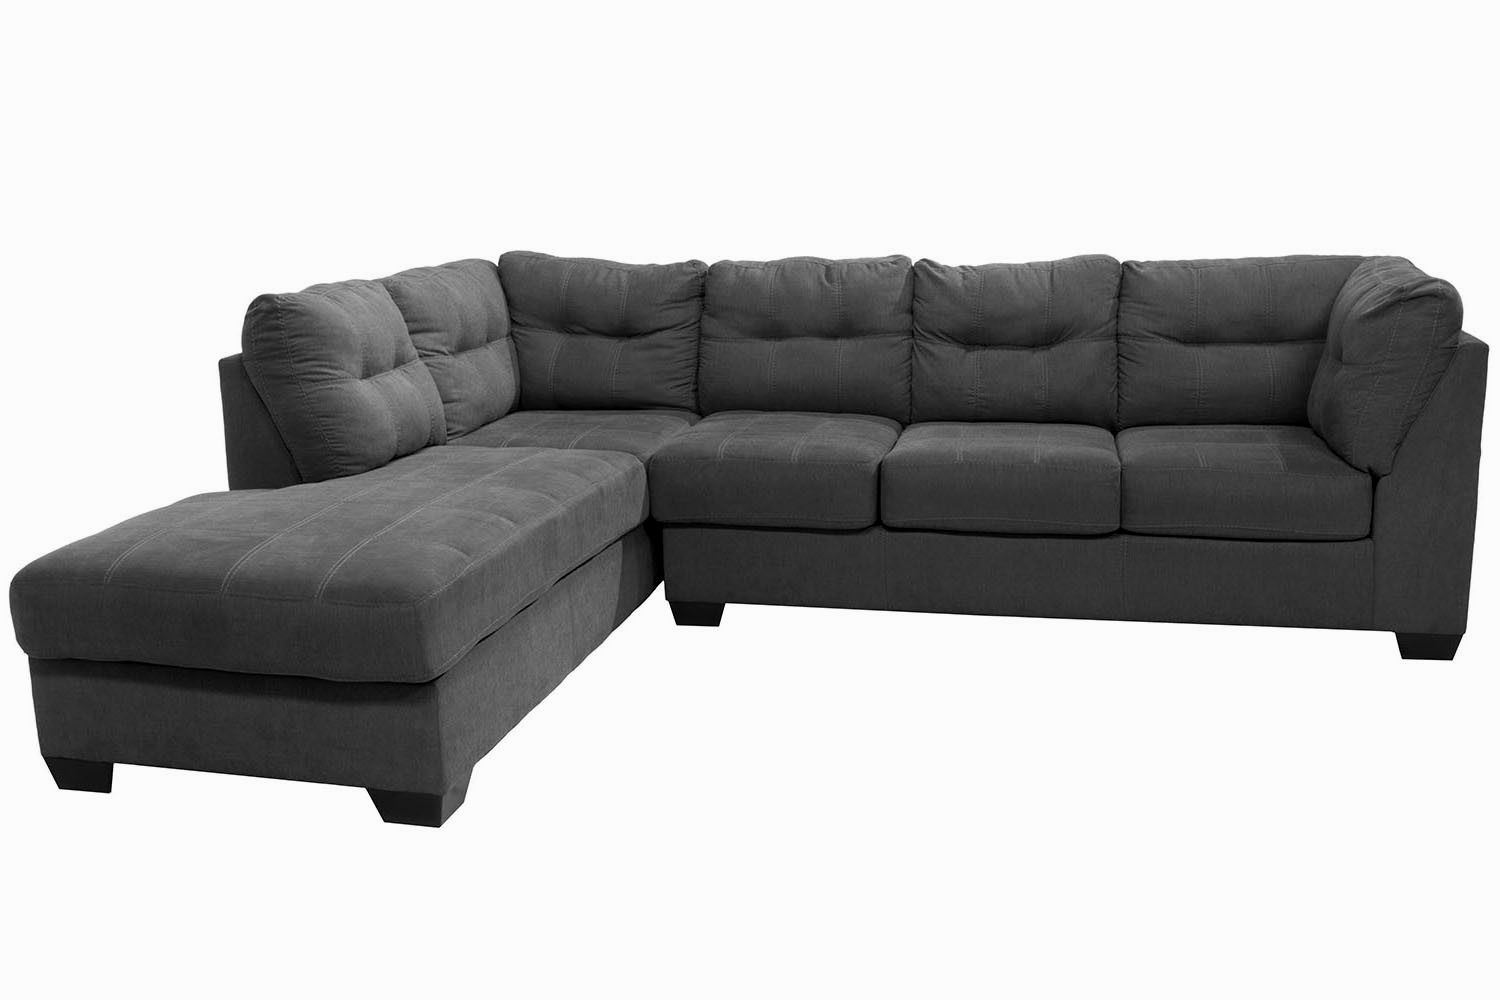 unique sectional sofas for sale collection-Excellent Sectional sofas for Sale Wallpaper